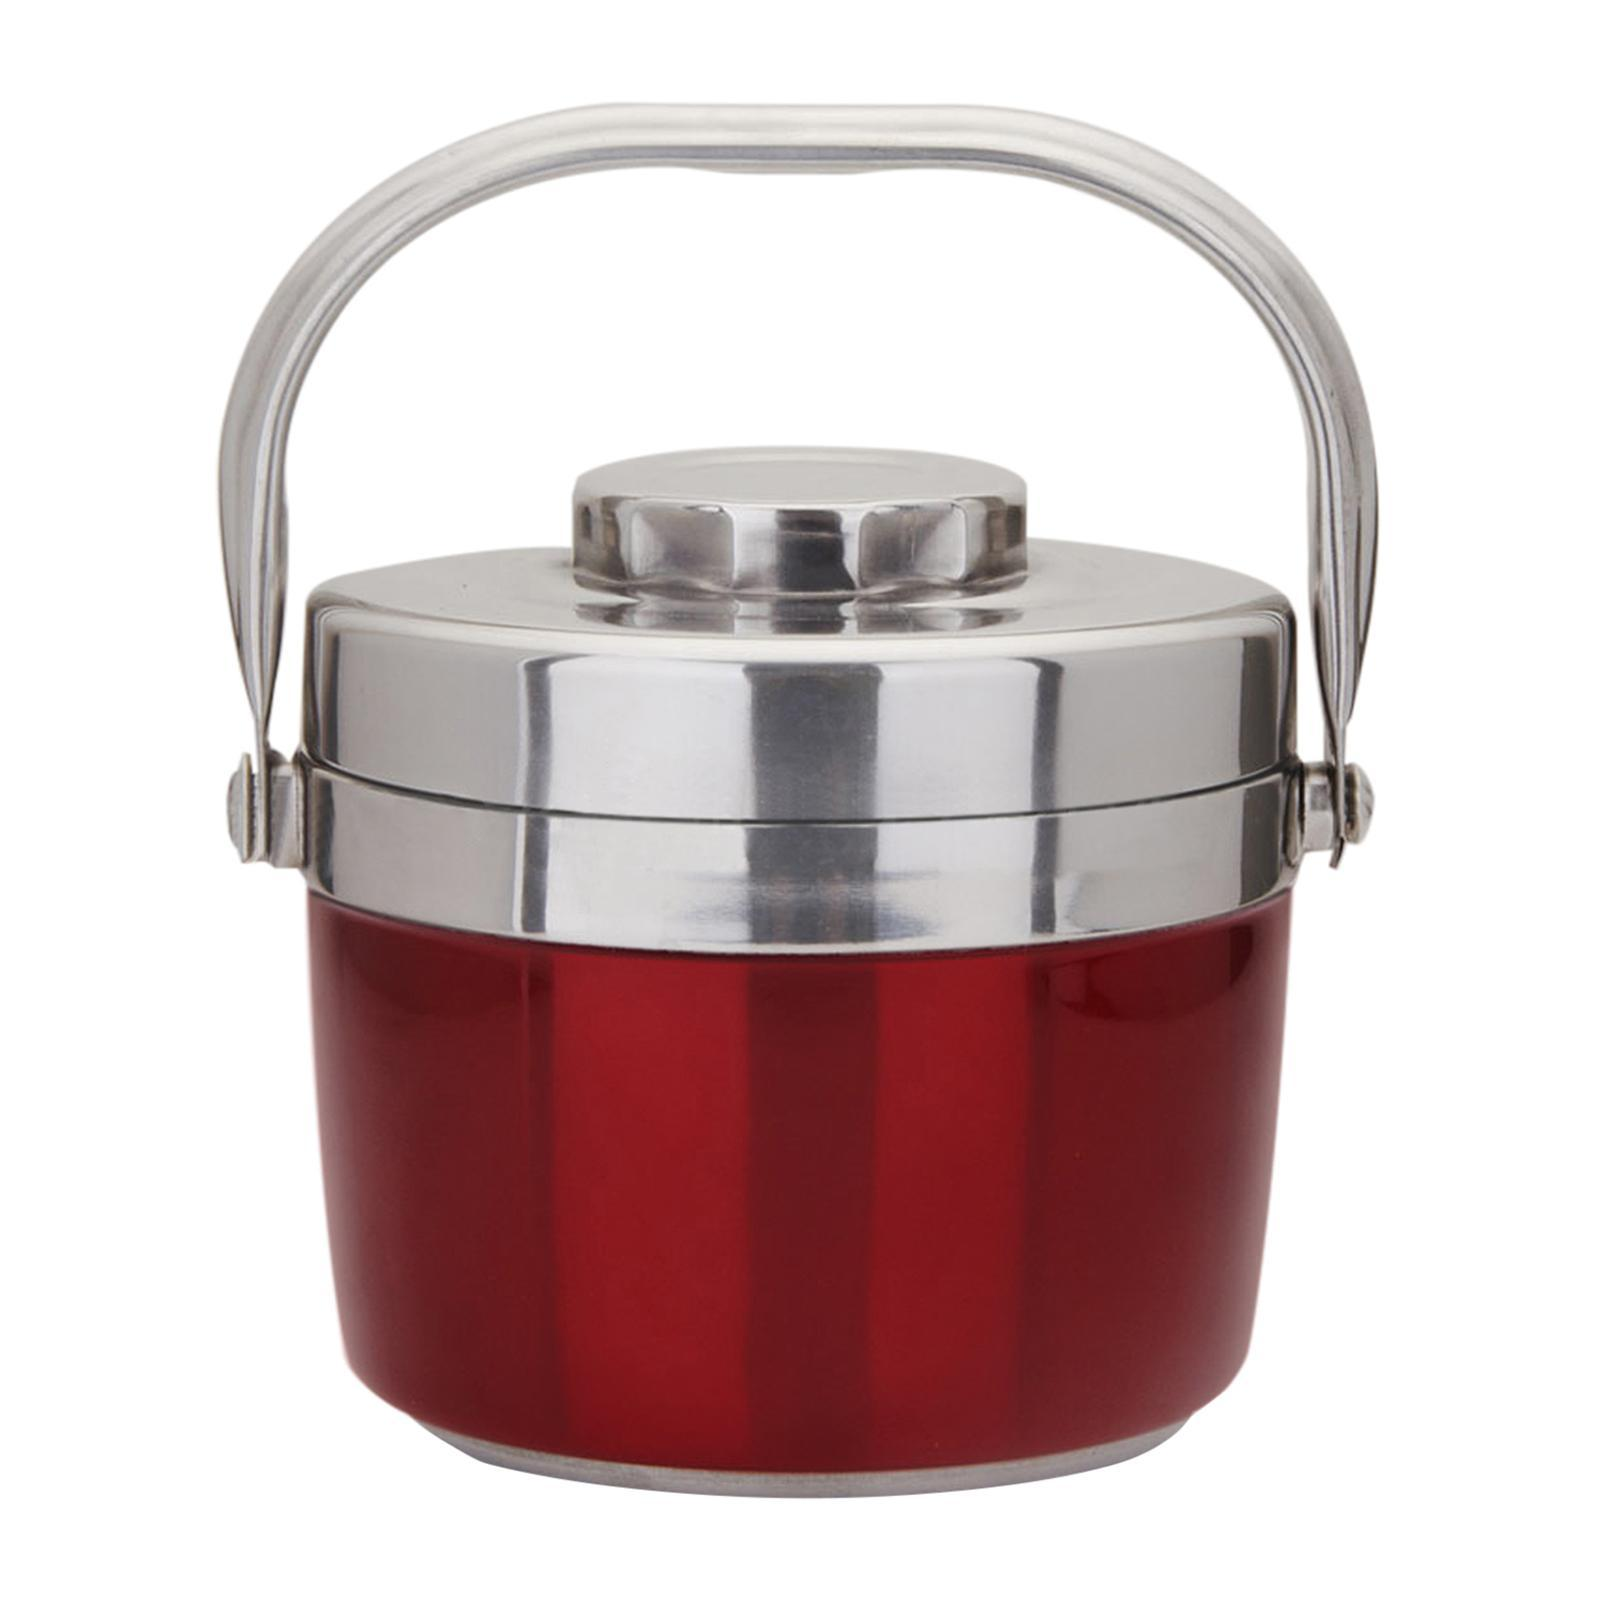 ALS Double Layer Stainless Steel Lunch Box 1.5L (Red) - Food Carrier